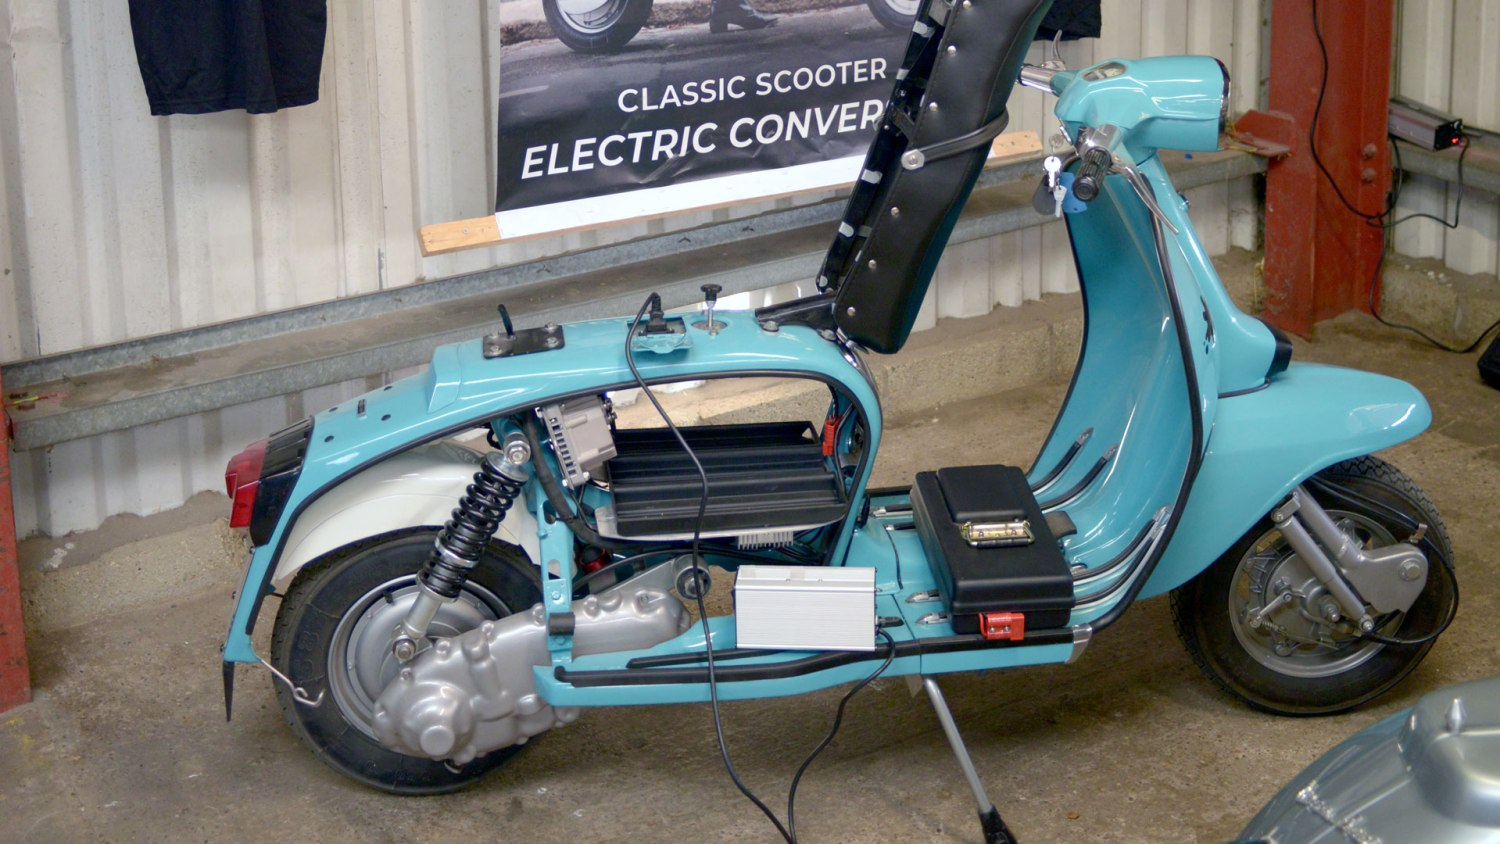 Electric Italian scooter